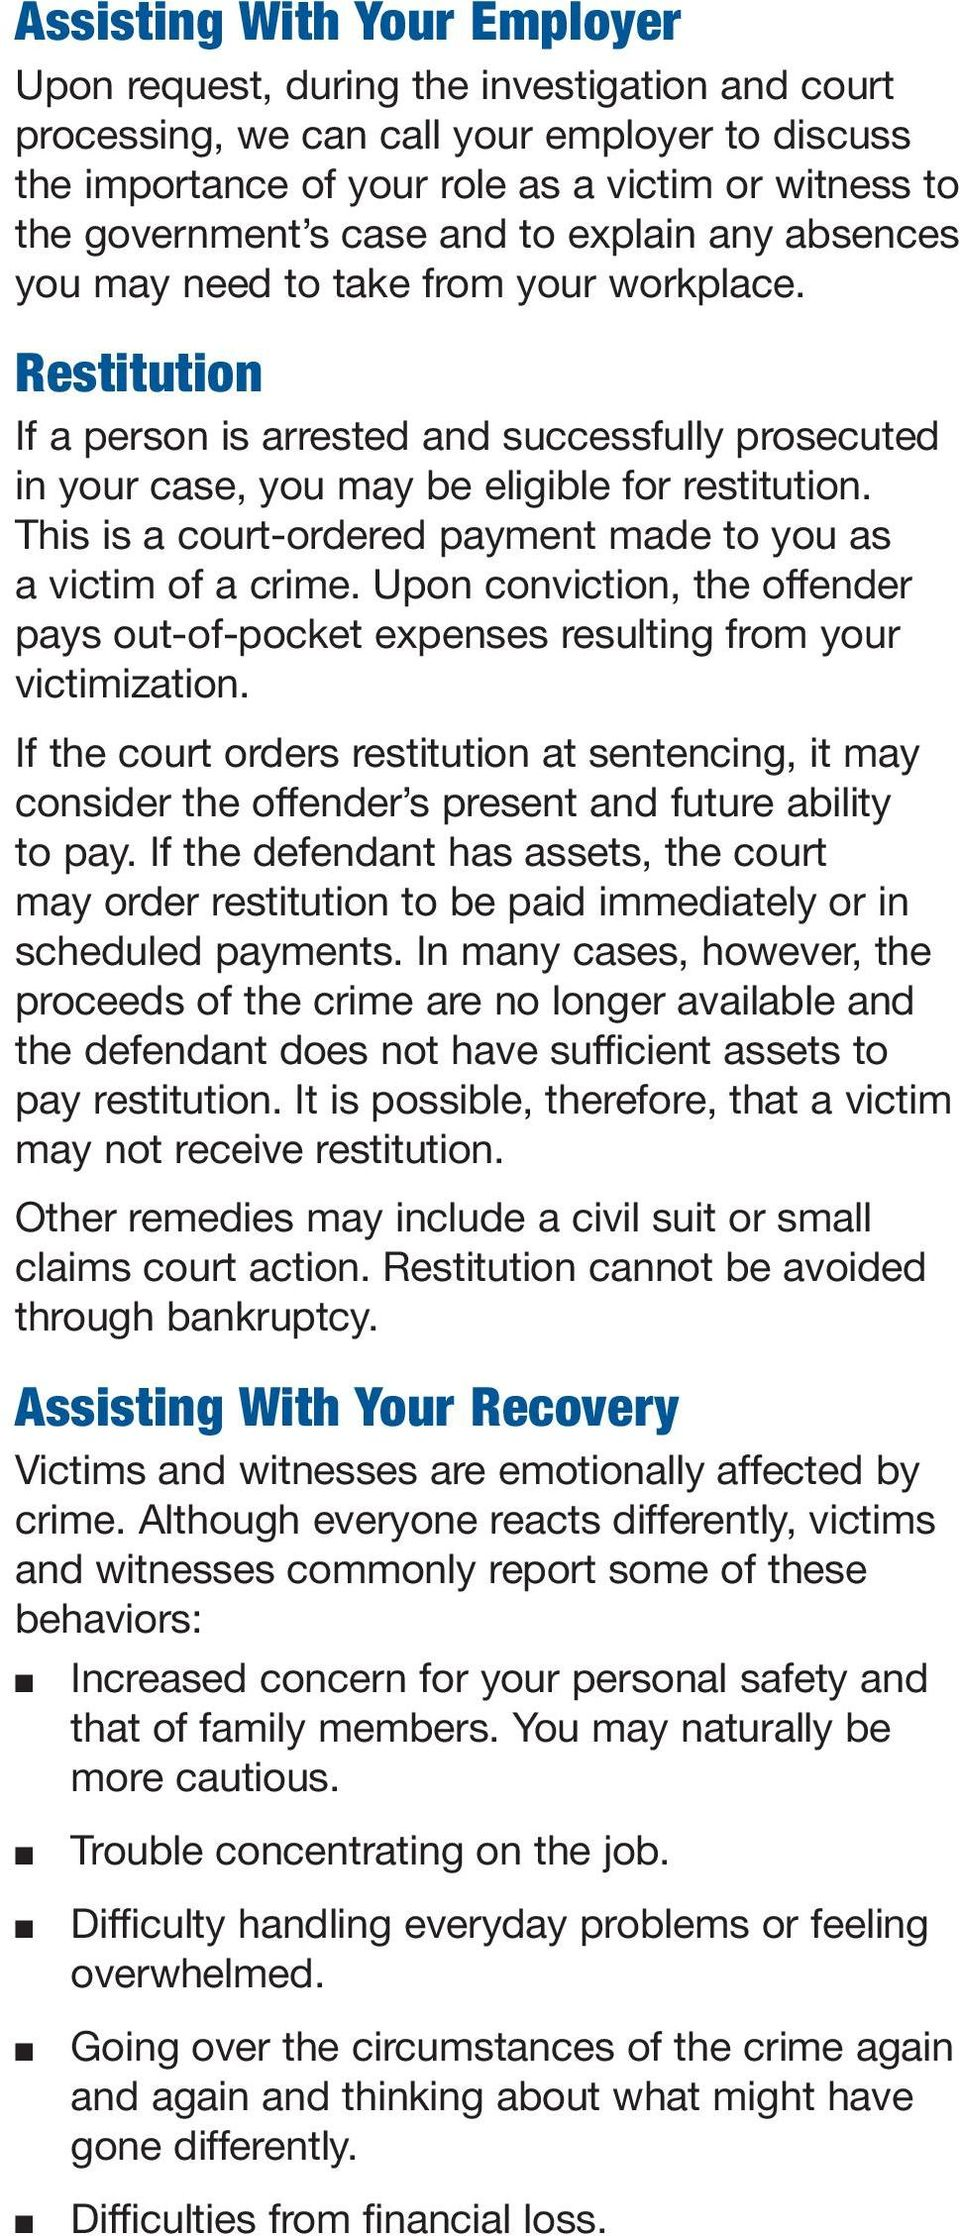 This is a court-ordered payment made to you as a victim of a crime. Upon conviction, the offender pays out-of-pocket expenses resulting from your victimization.